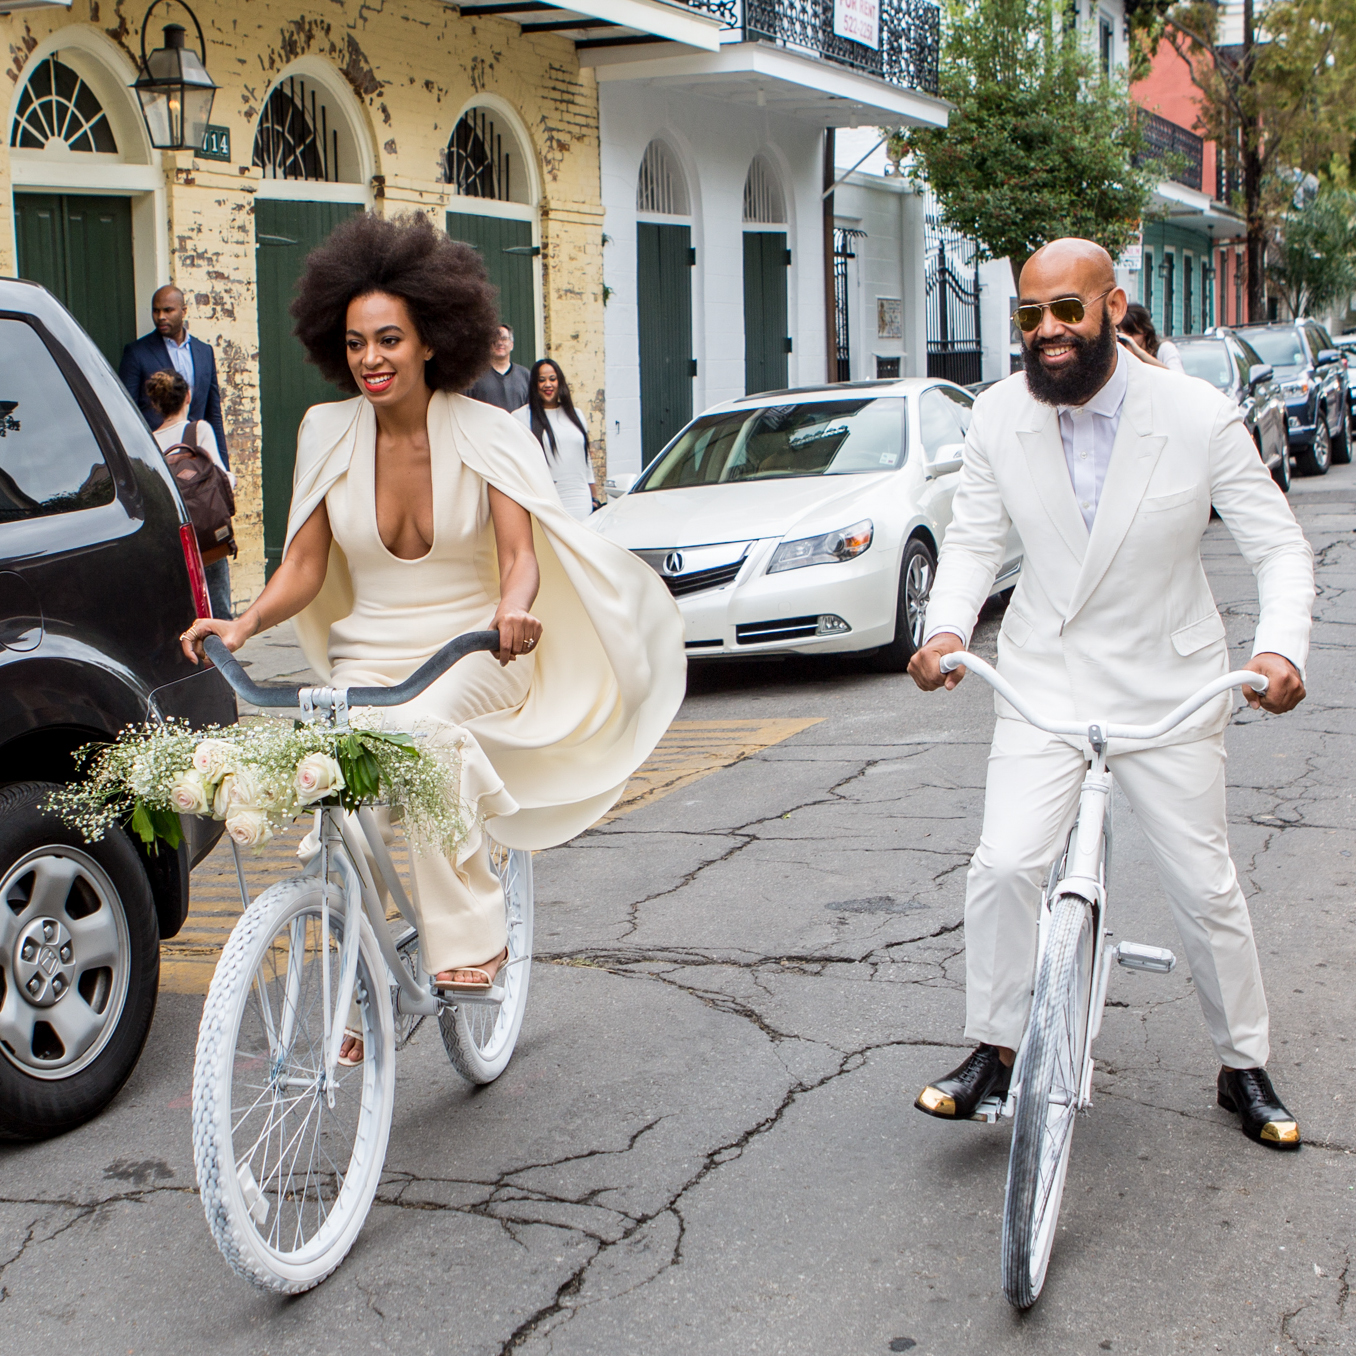 Wedding Dresses New Orleans Magazine Street | Wedding